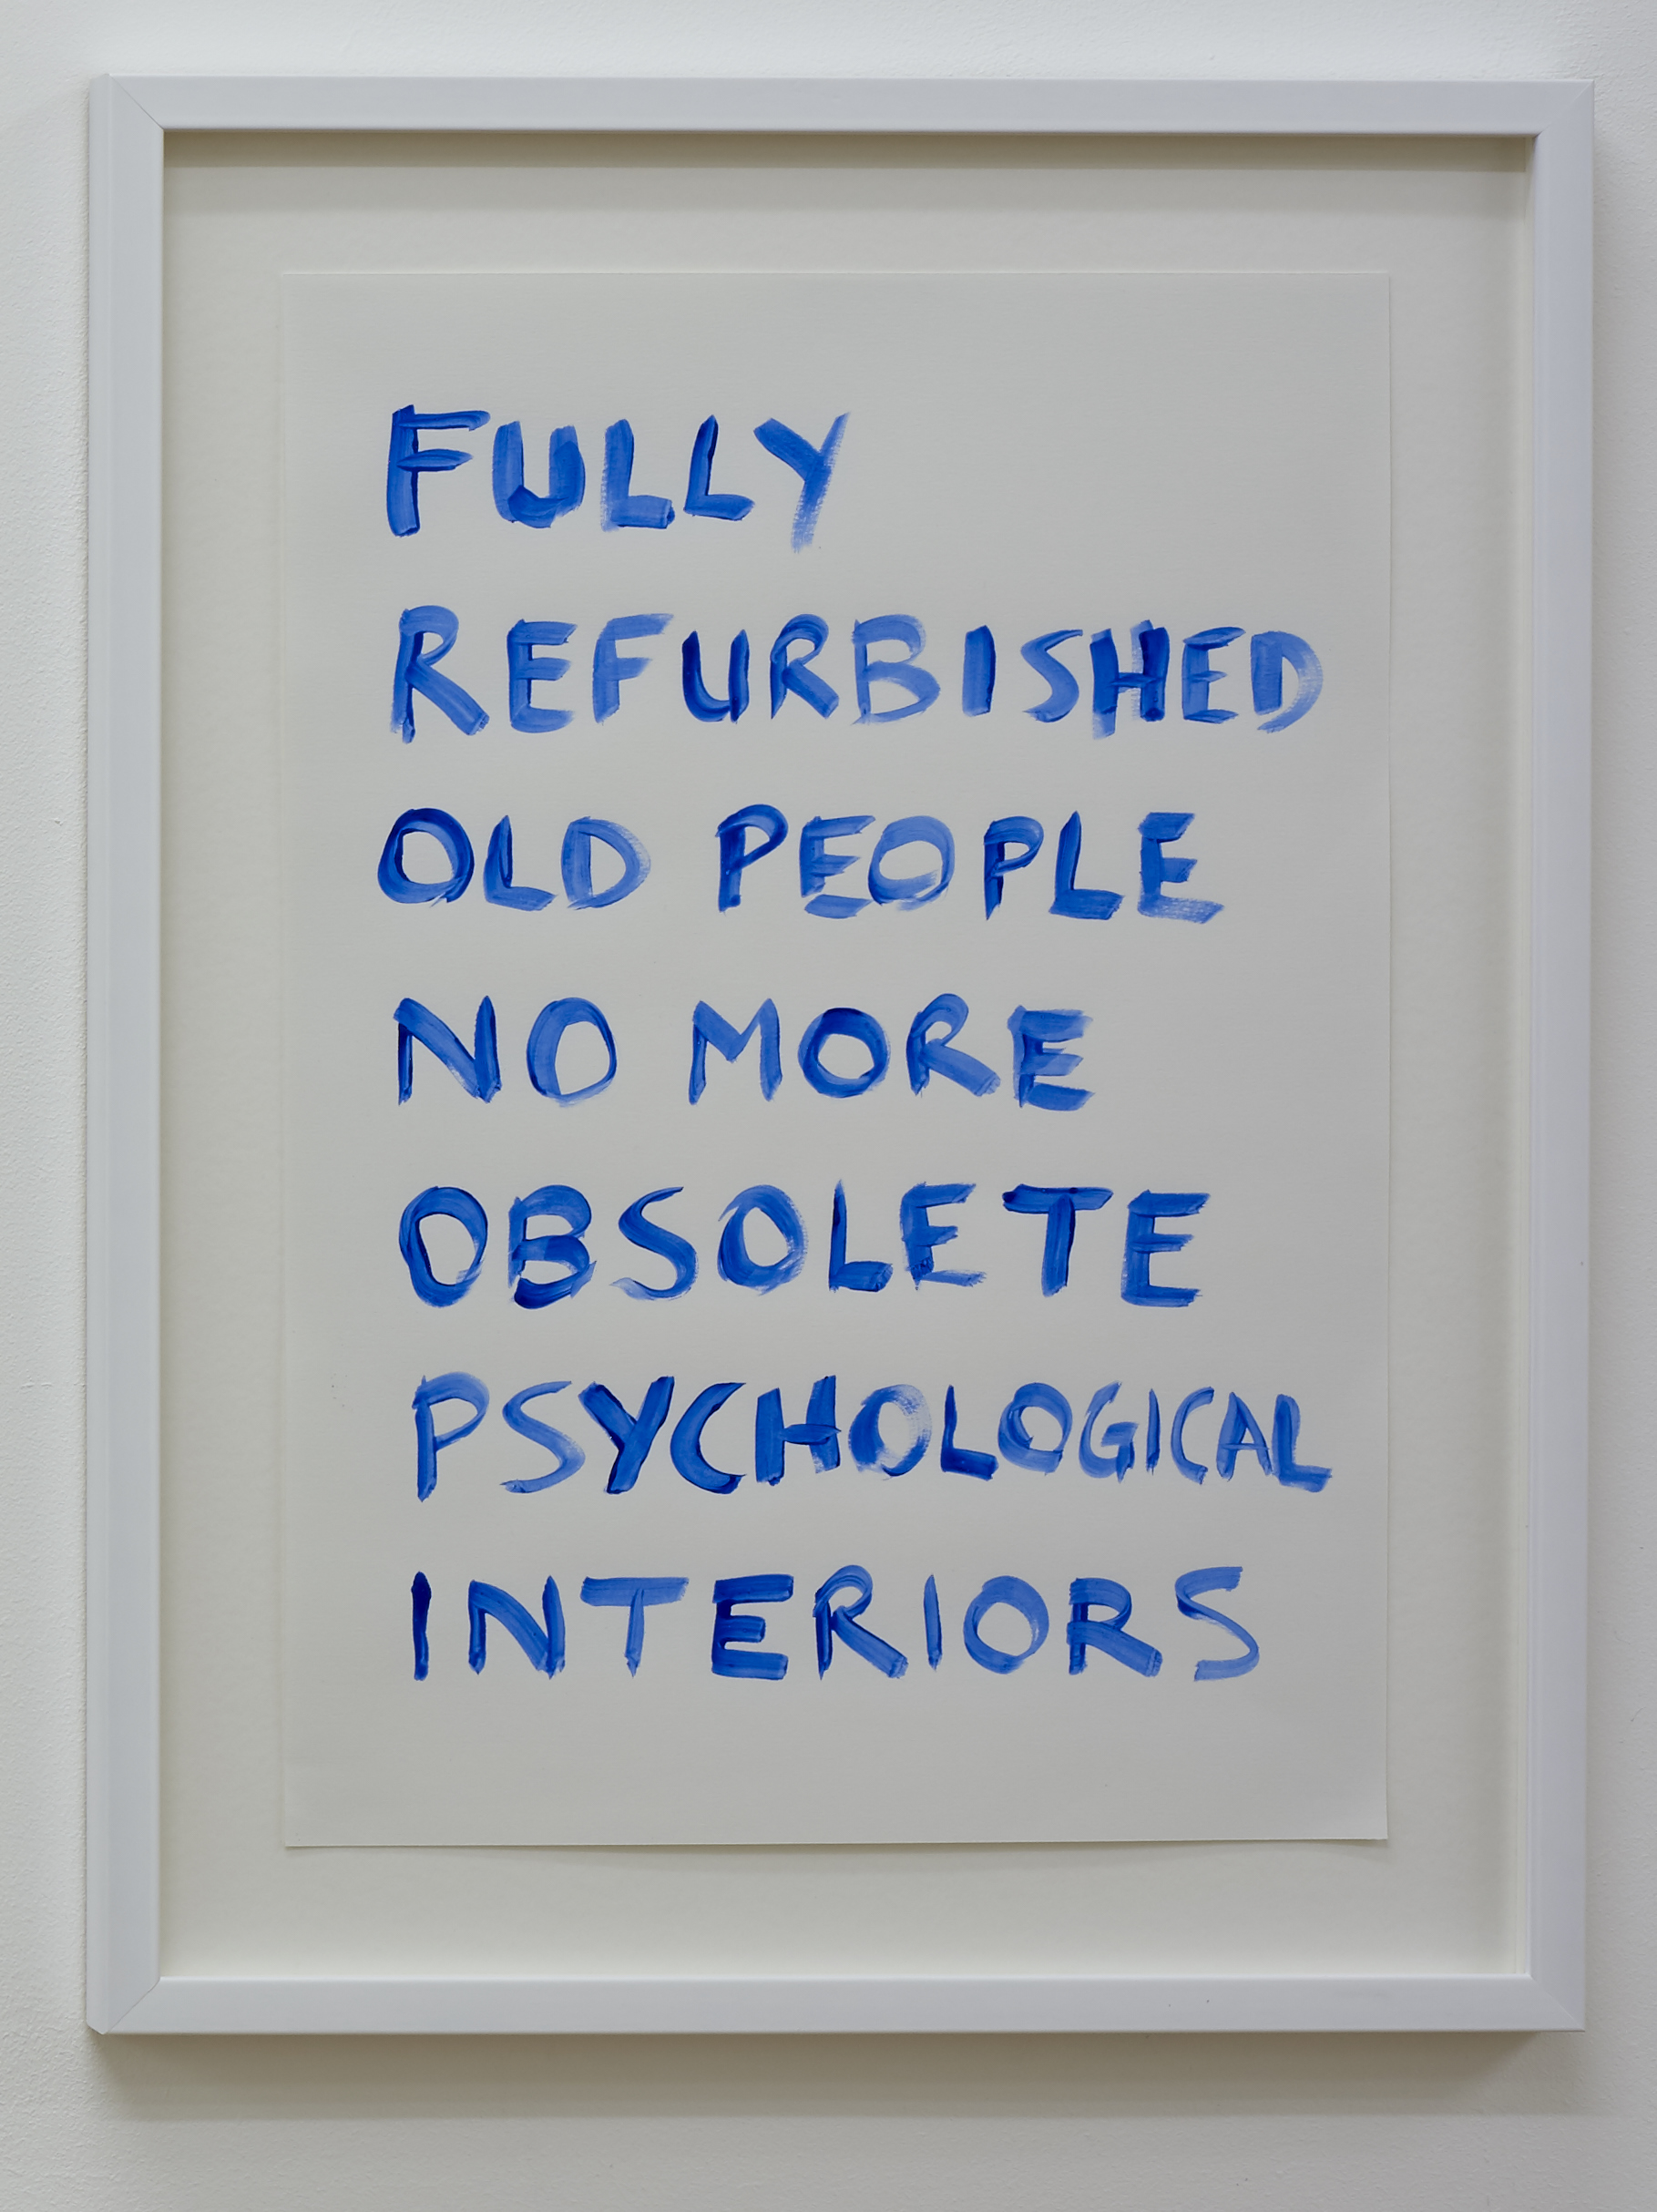 Tim Etchells, Old People, 2015. Blue acrylic on archival paper. Framed. 29.7 x 42 cm.